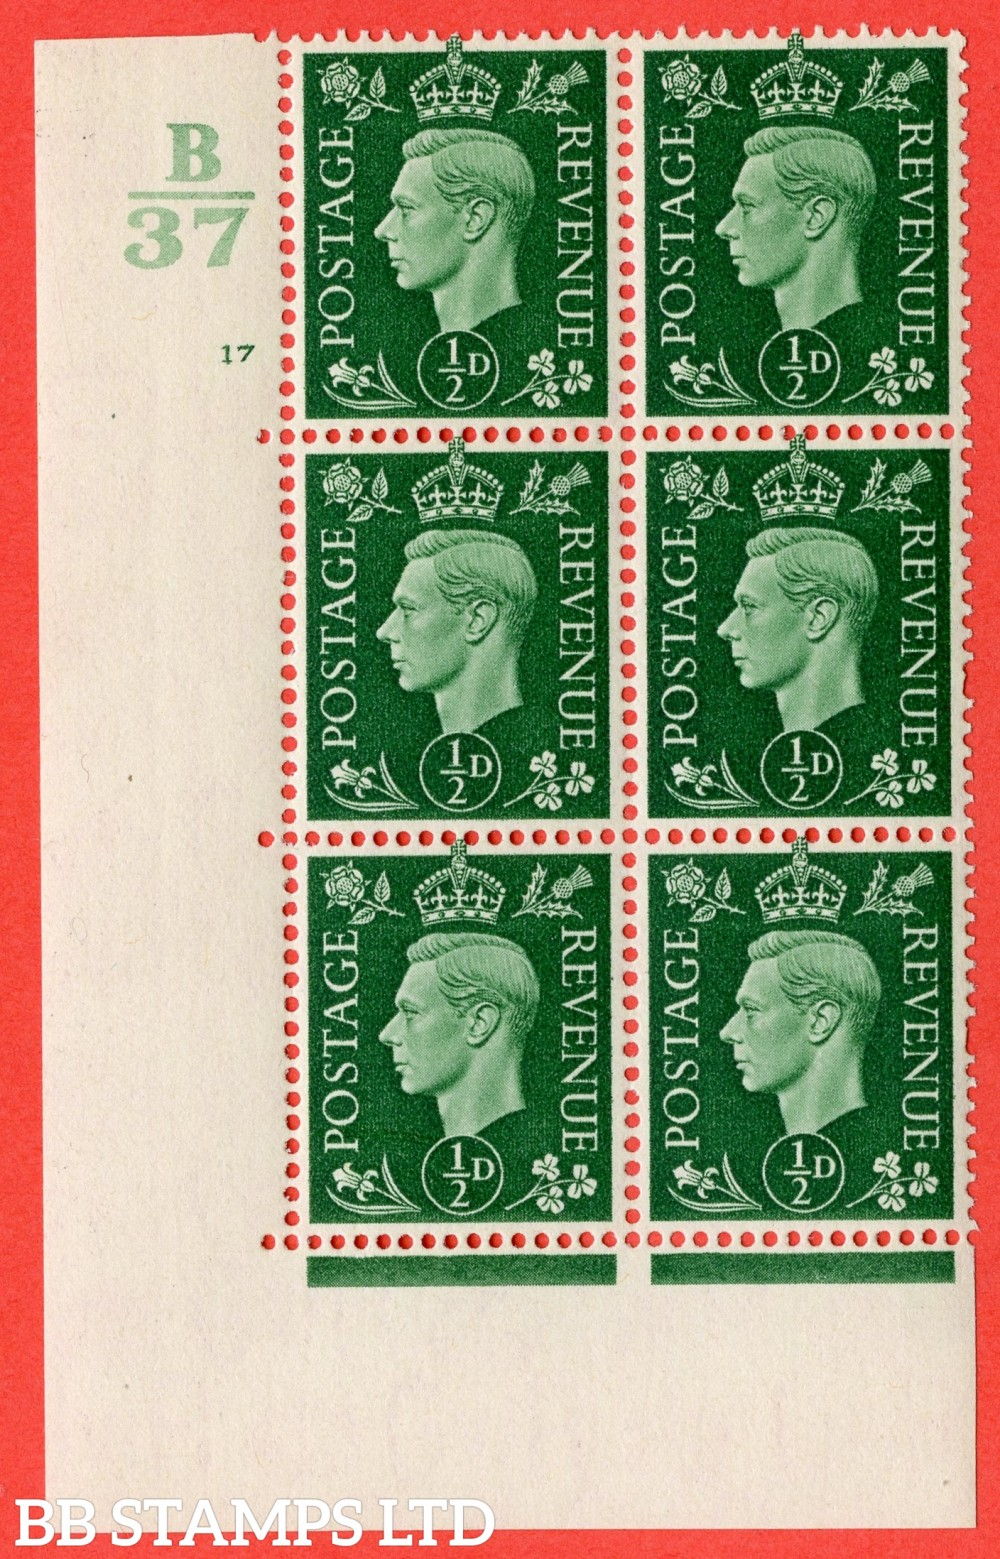 "SG. 462. Q1. ½d Green. A superb UNMOUNTED MINT "" Control B37 cylinder 17 no dot "" block of 6 with perf type 5 E/I with marginal rule."